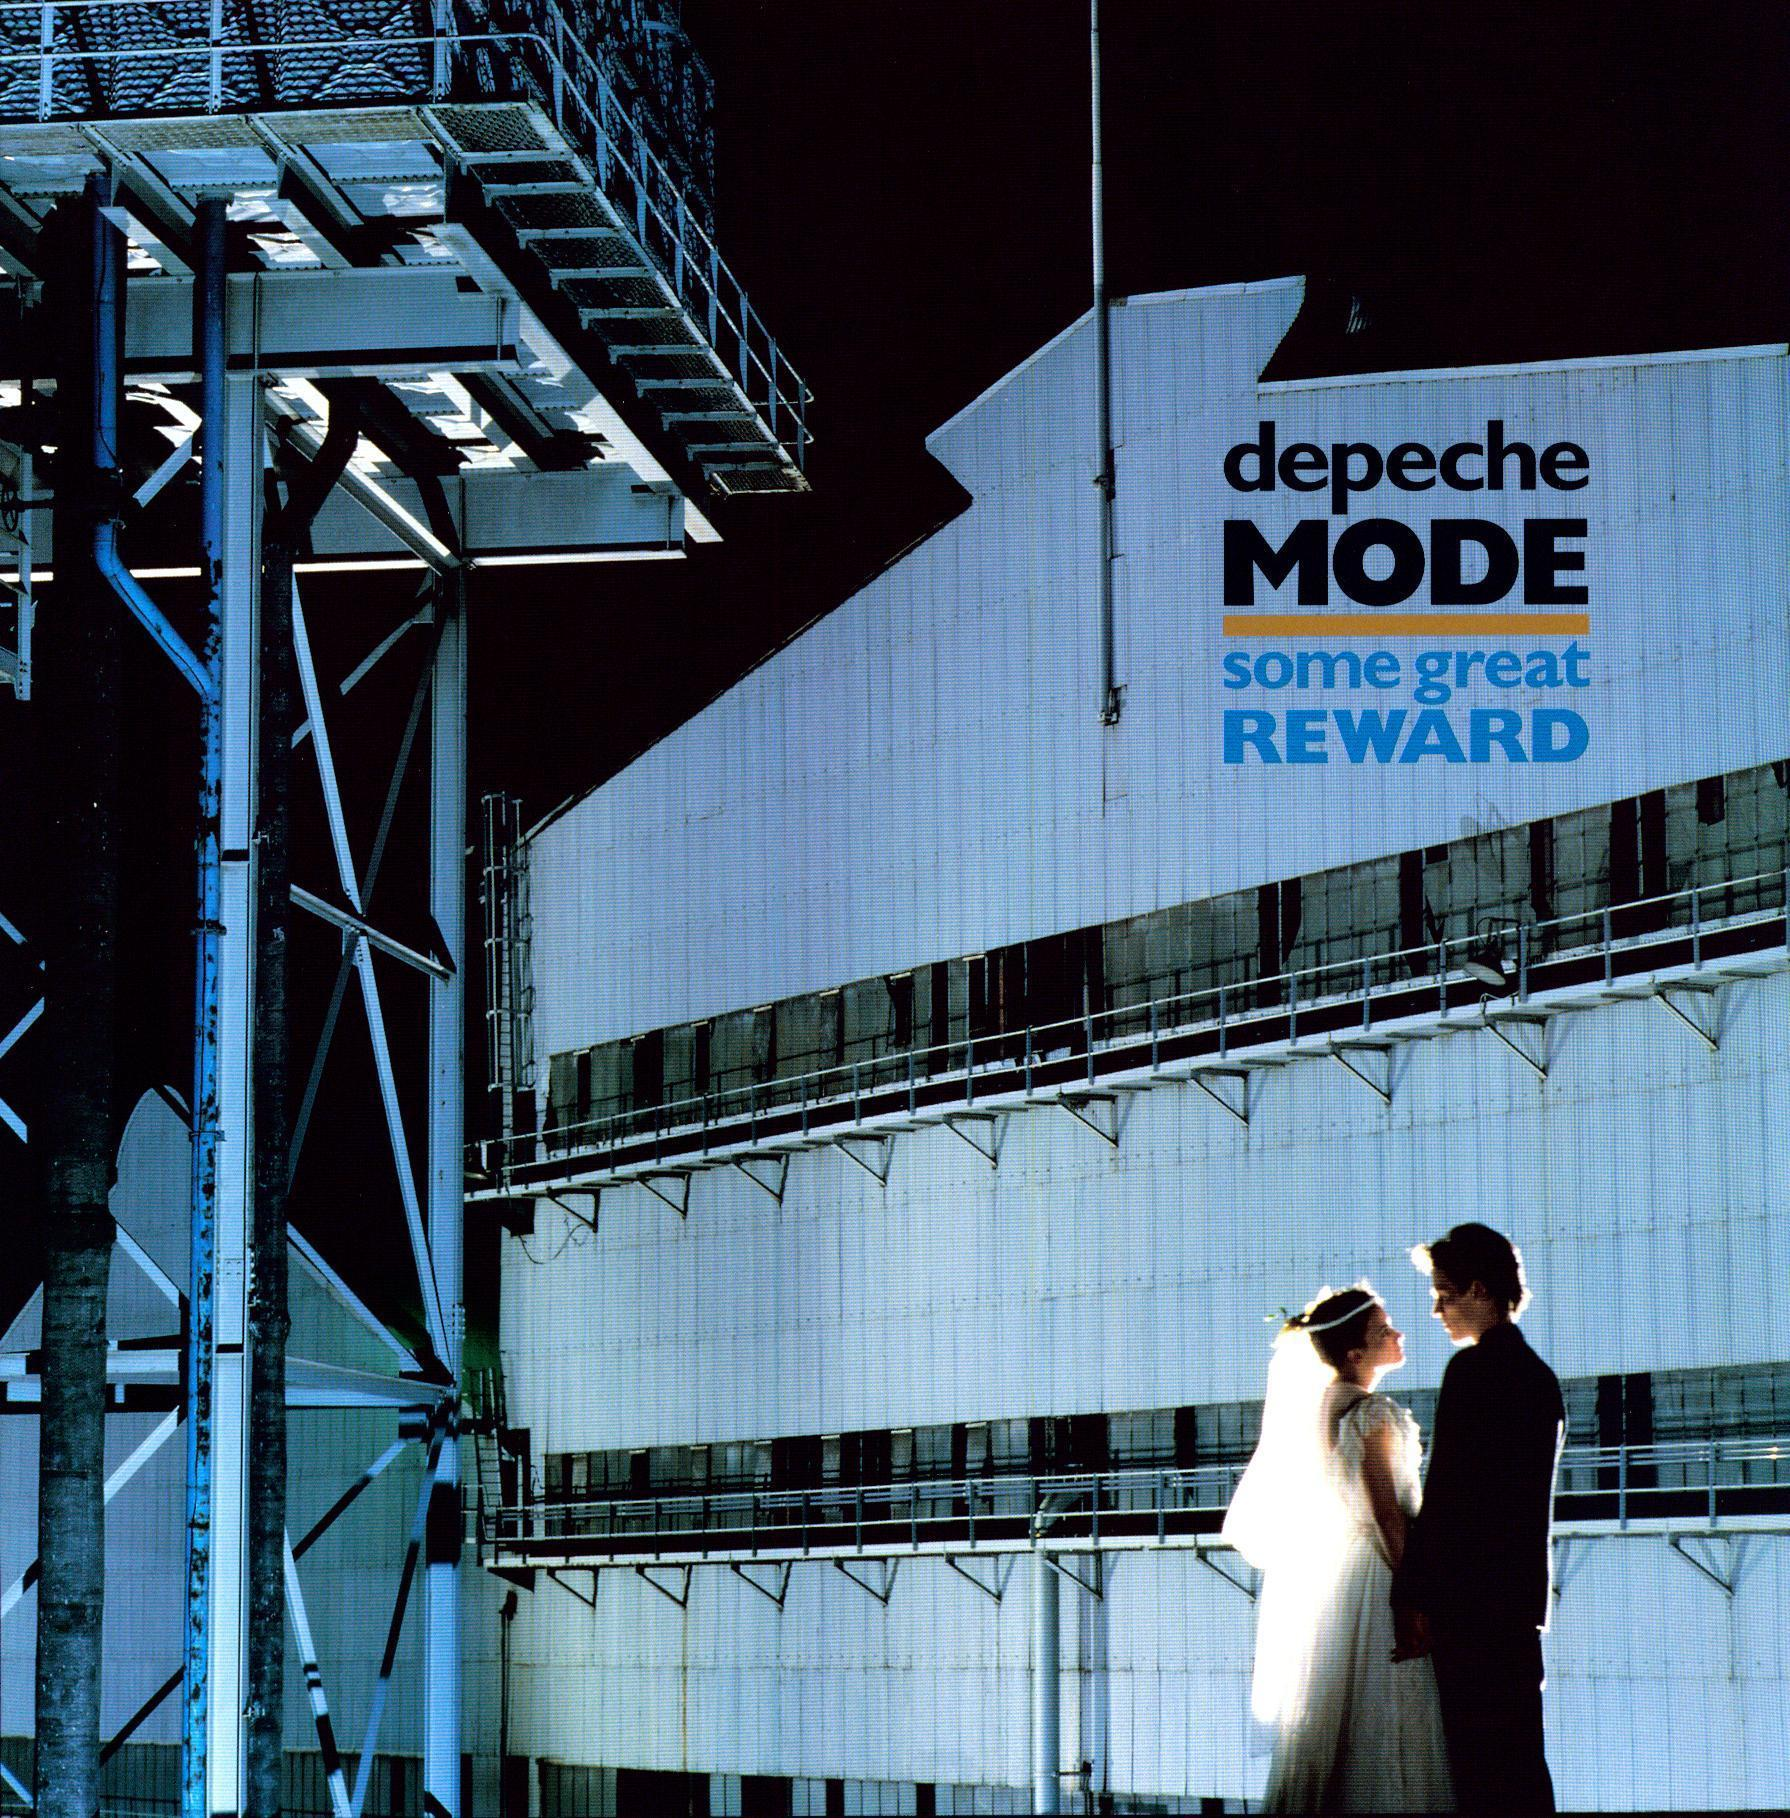 Depeche Mode - Playing The Angel | Releases | Discogs |Depeche Mode Album Covers